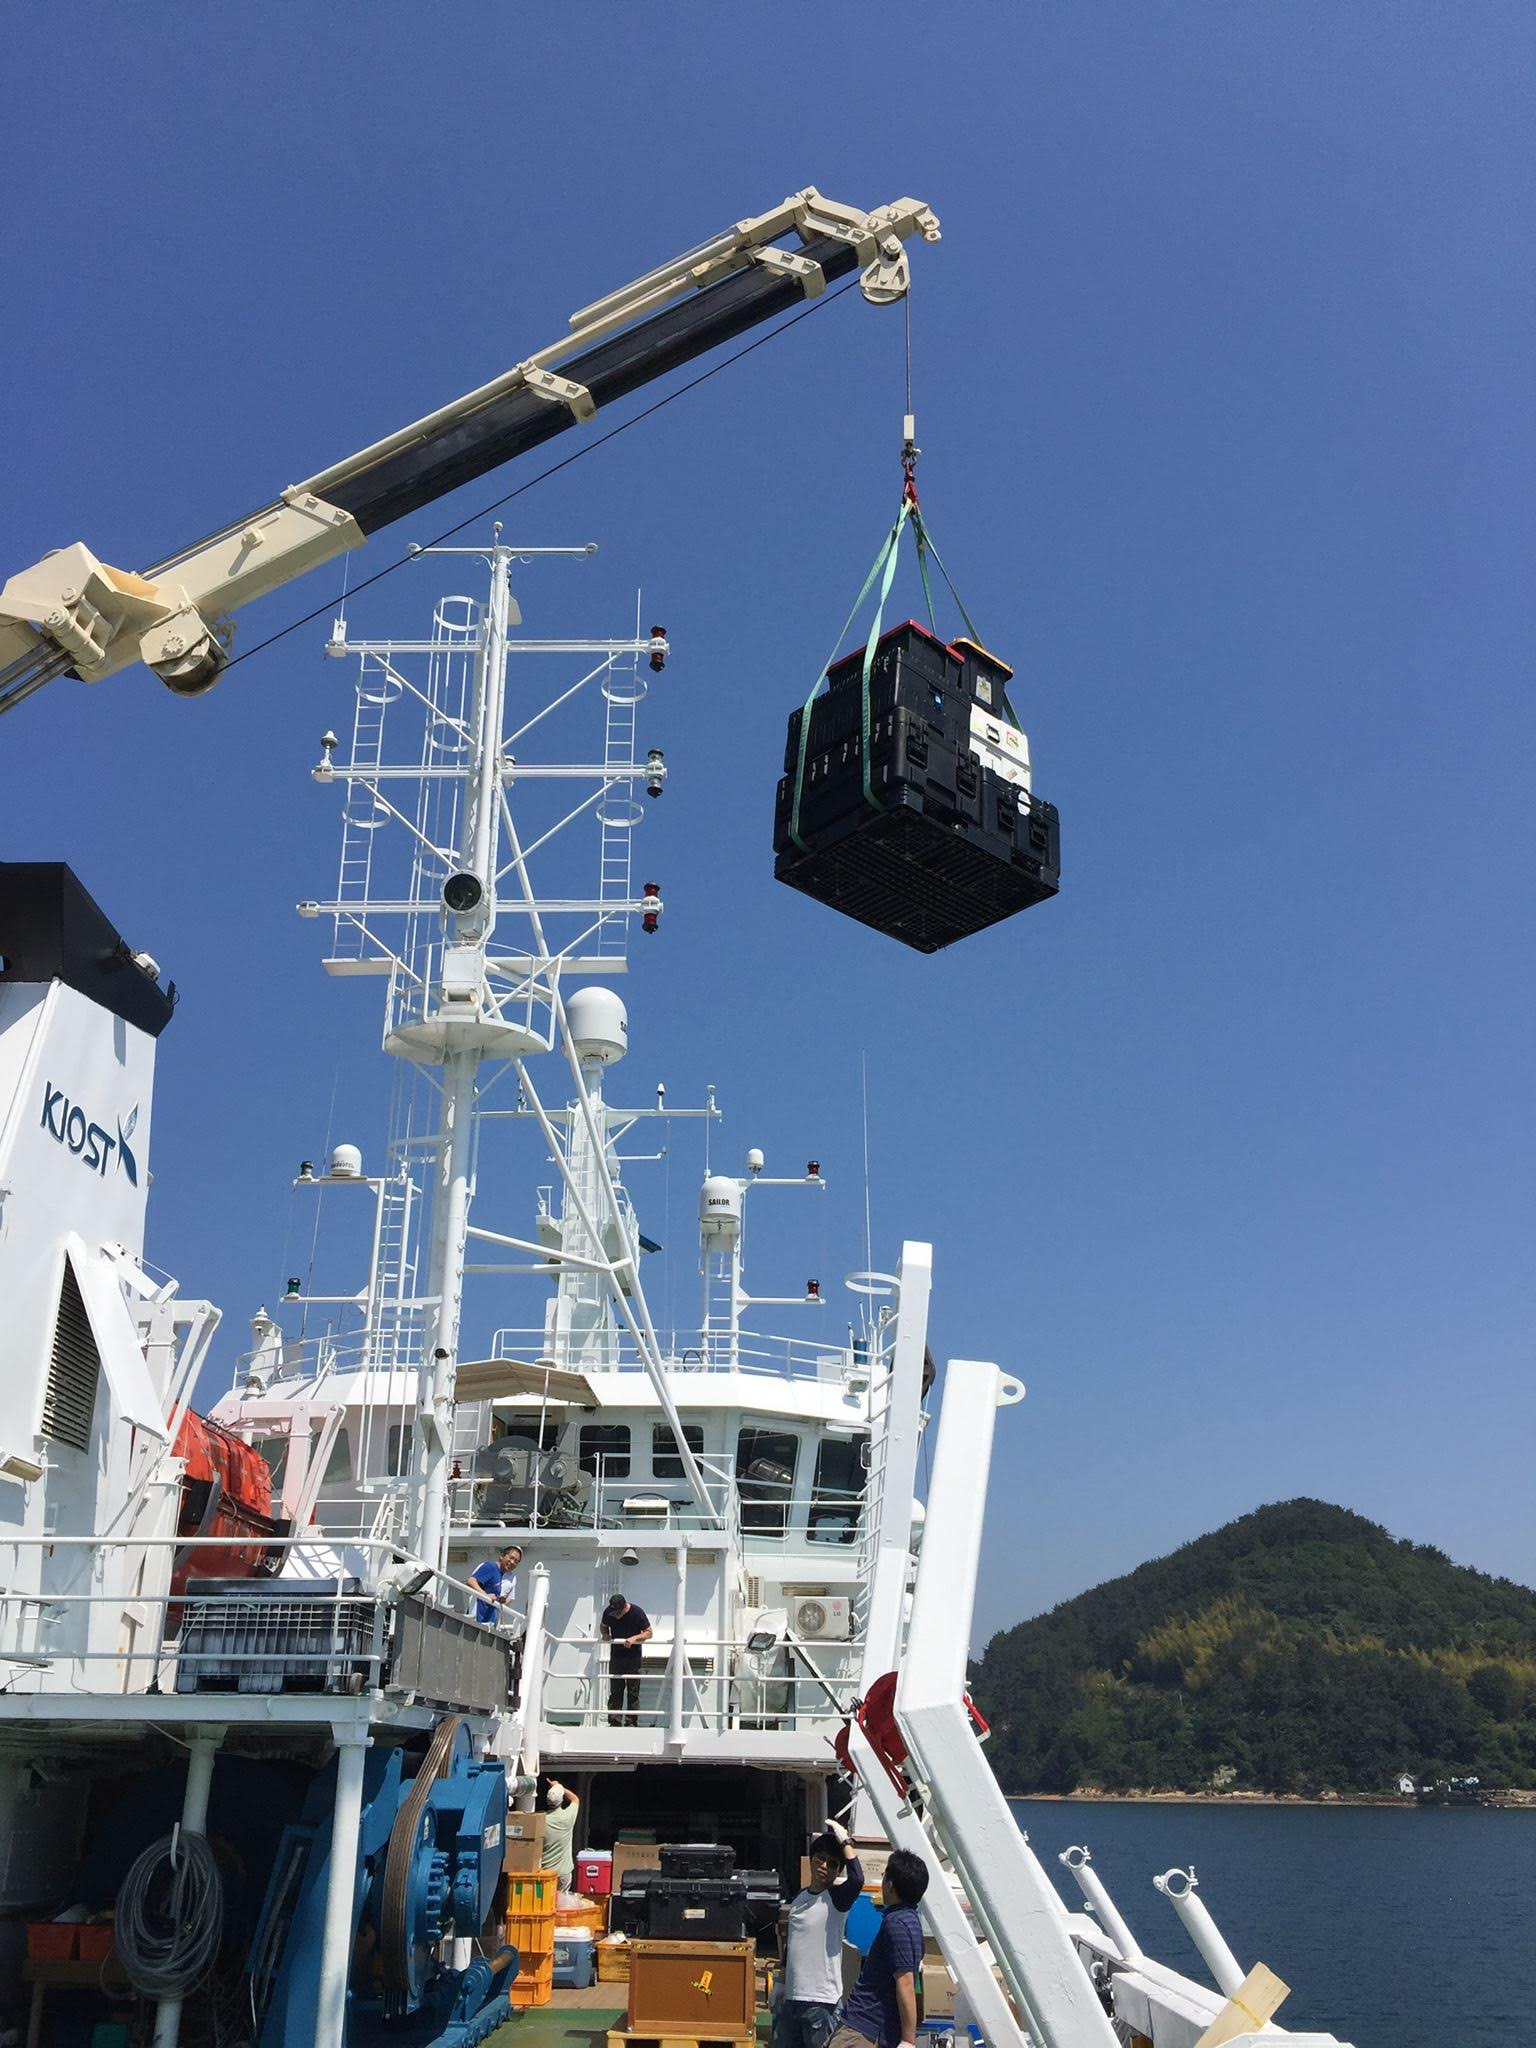 On-board cranes lift heavier KORUS-OC equipment onto the deck of the R/V <em>Onnuri</em>.